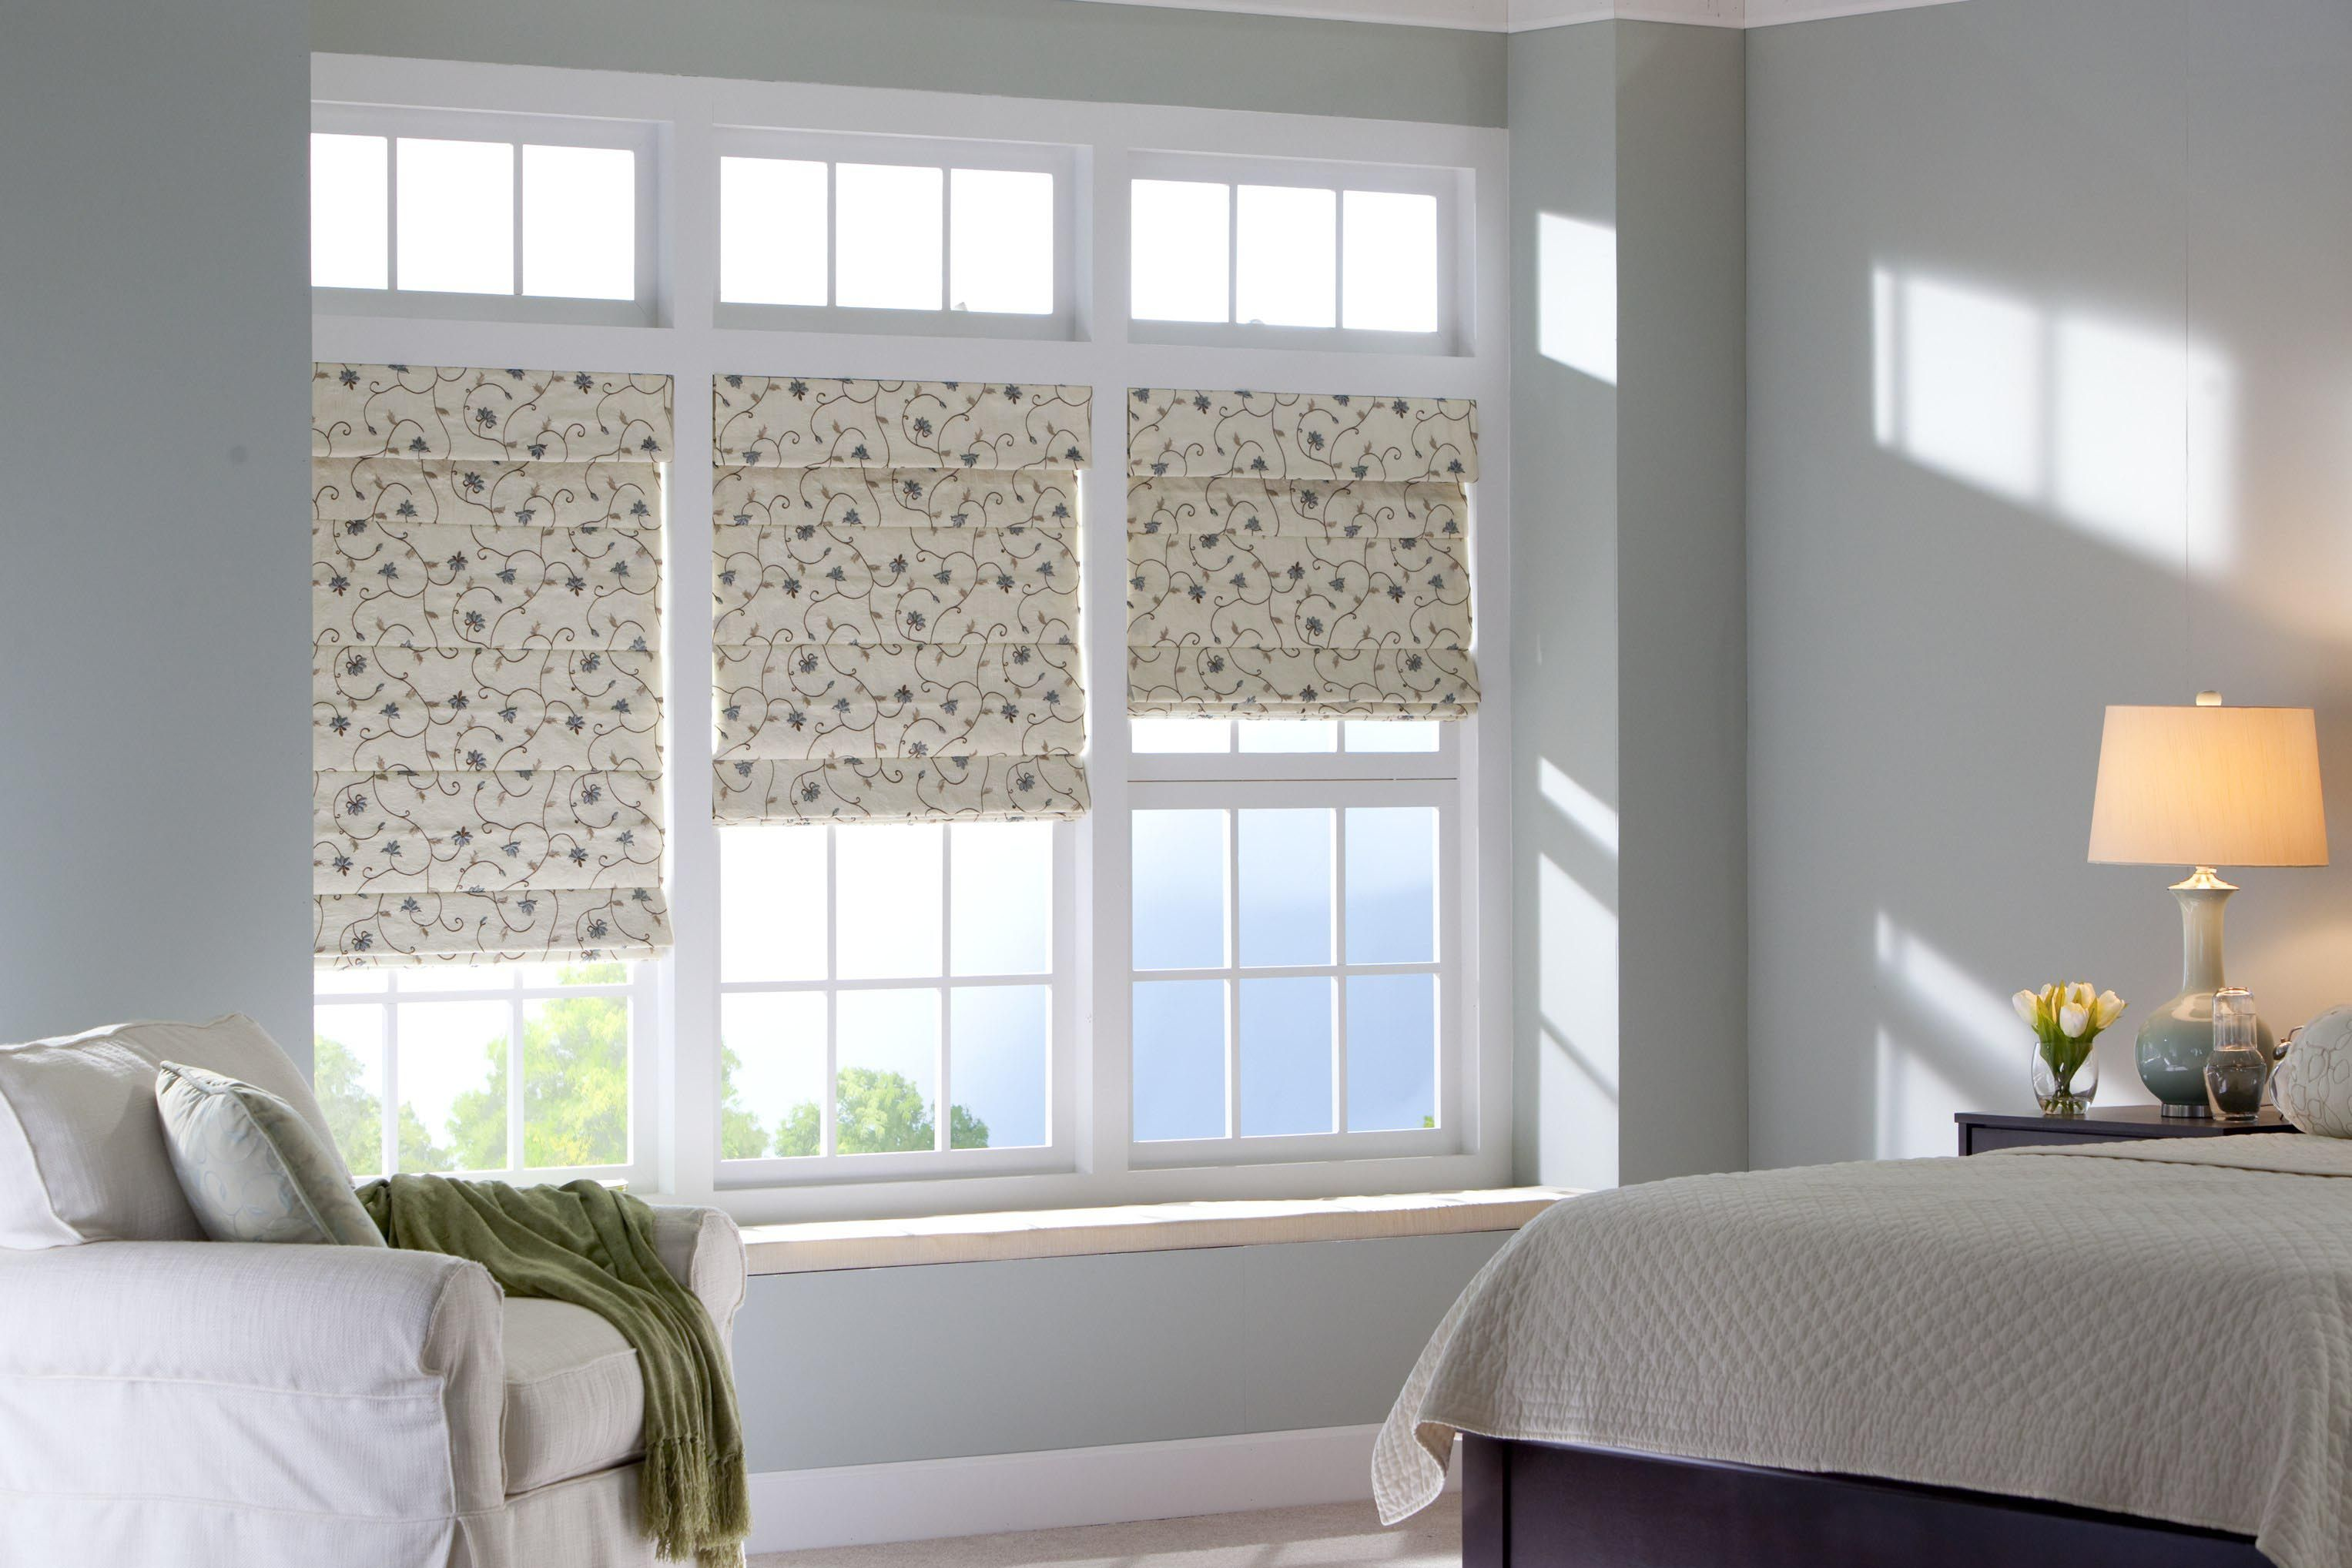 blinds treatments reviews cordless window cellular chicology pdx shade estrada wayfair blackout